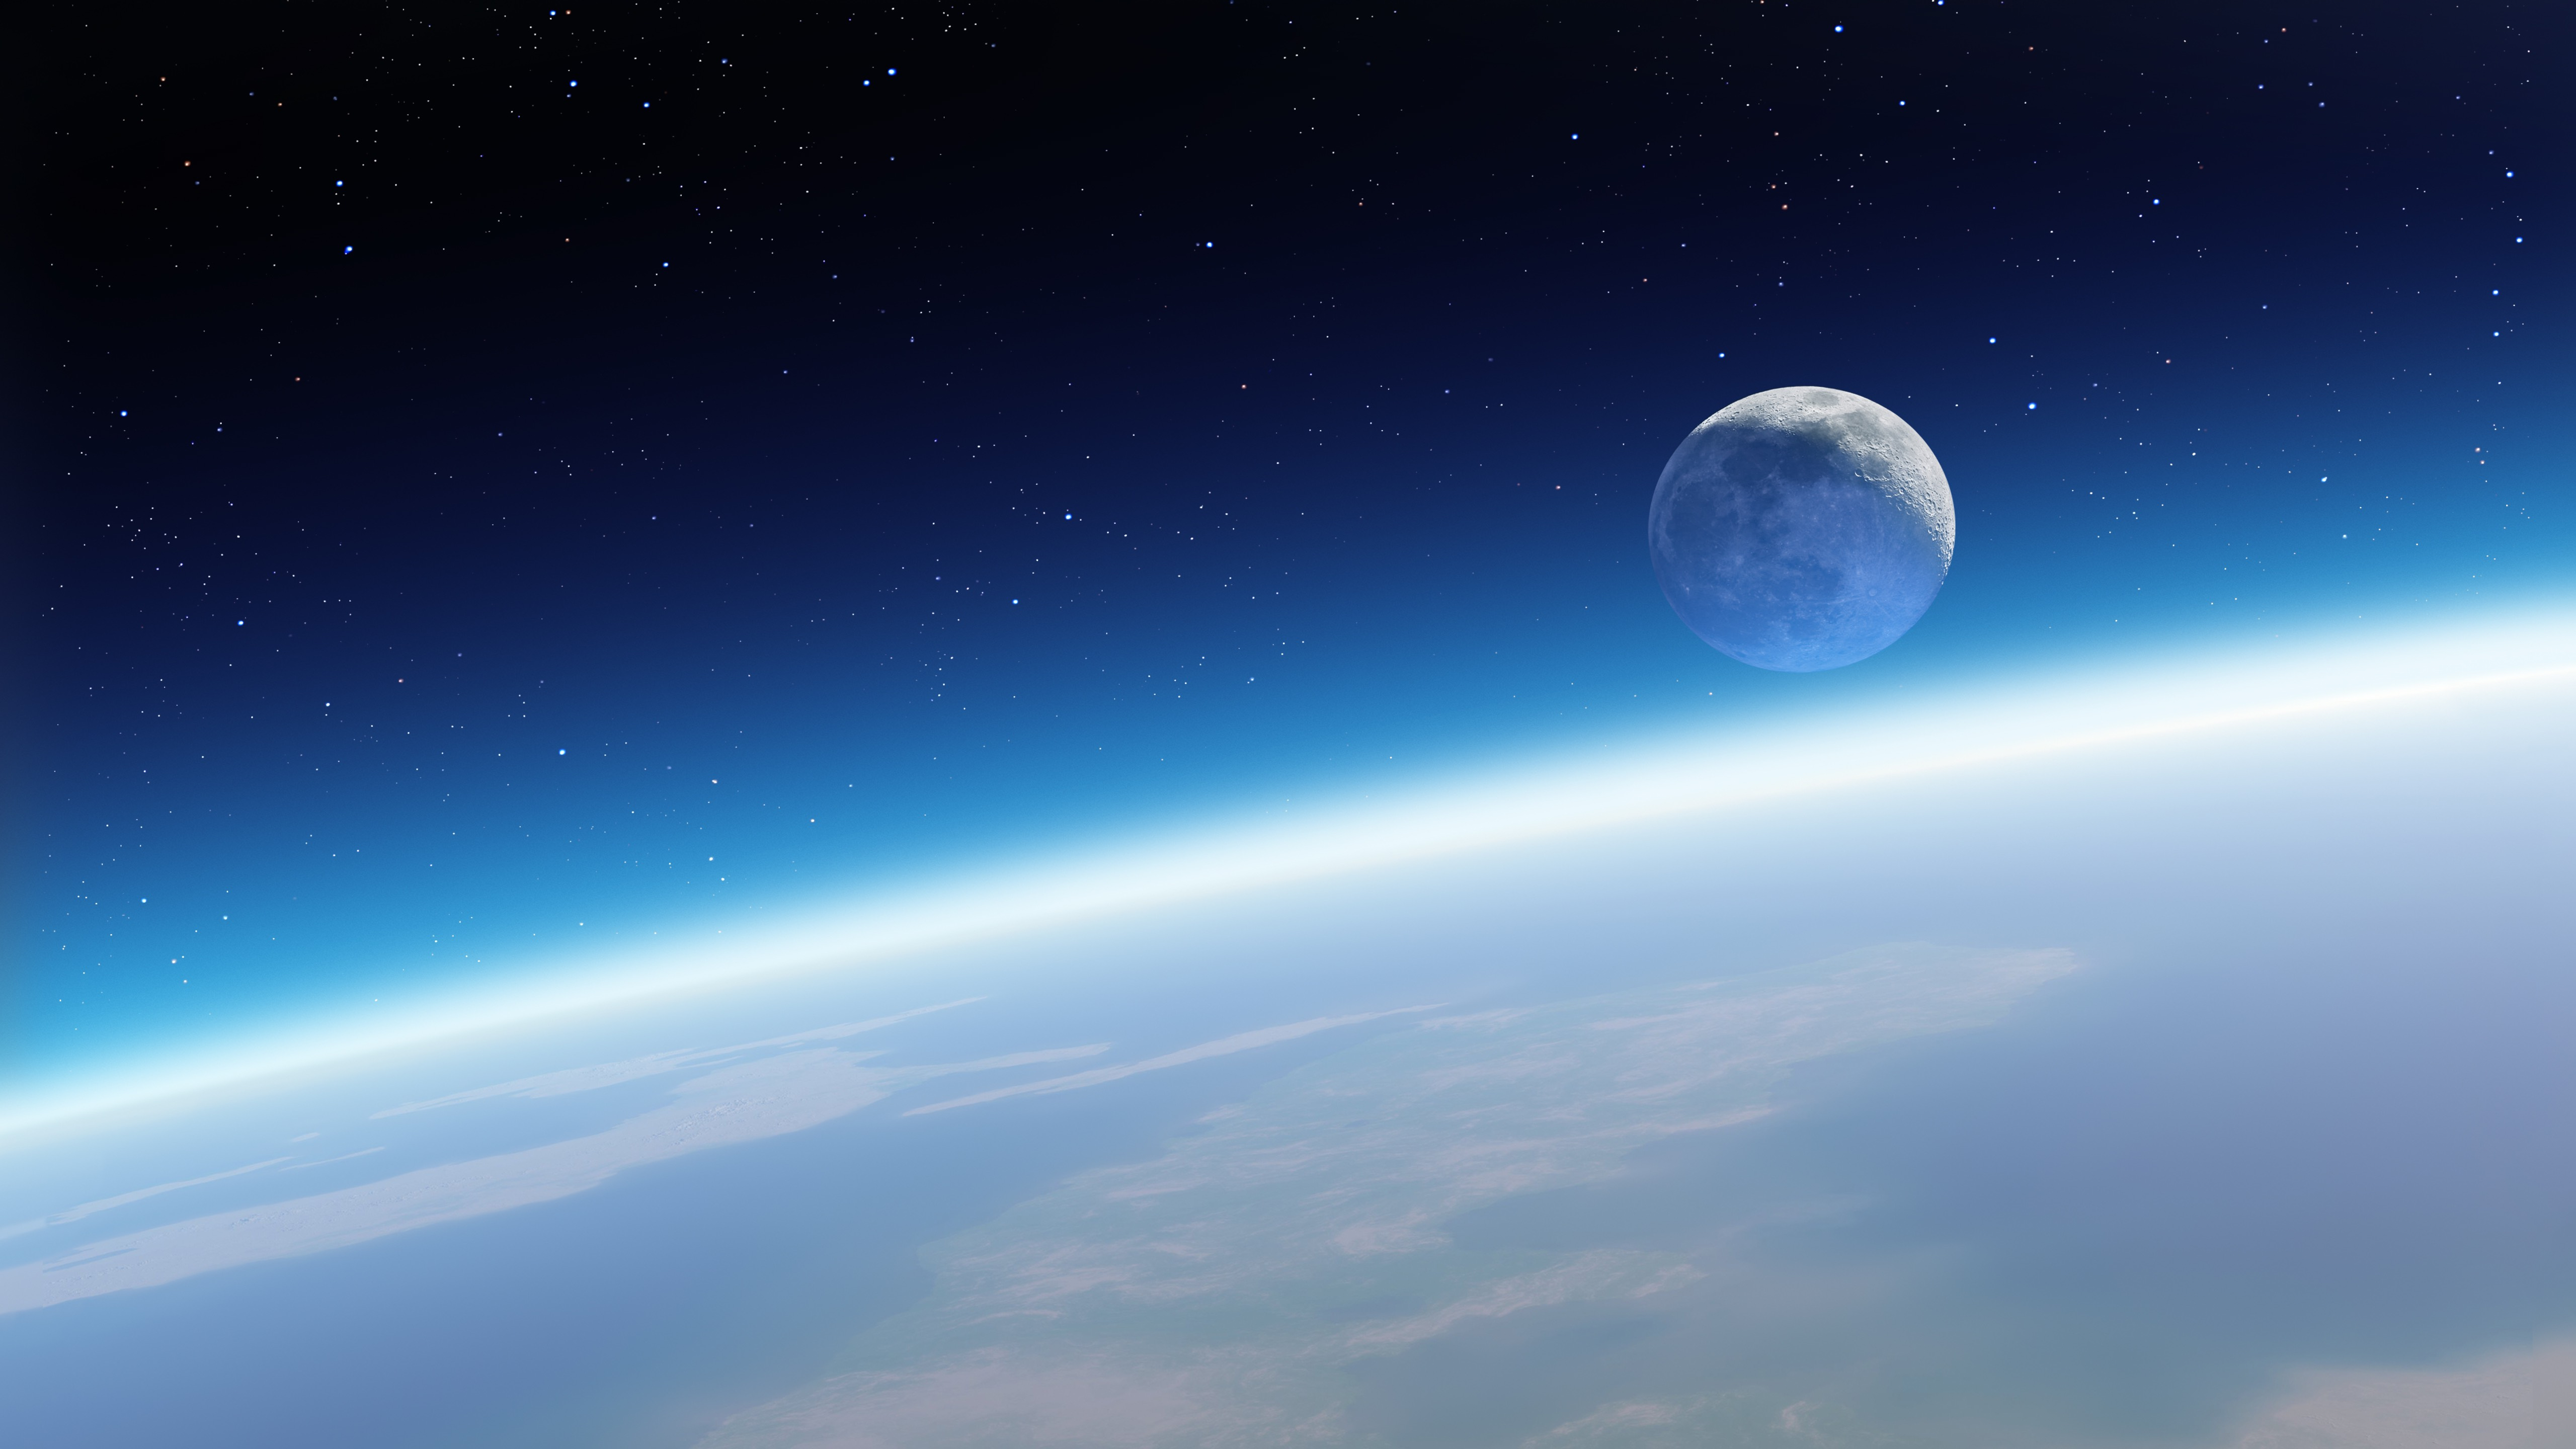 Star Wars Death Star Wallpaper Posted By Sarah Anderson